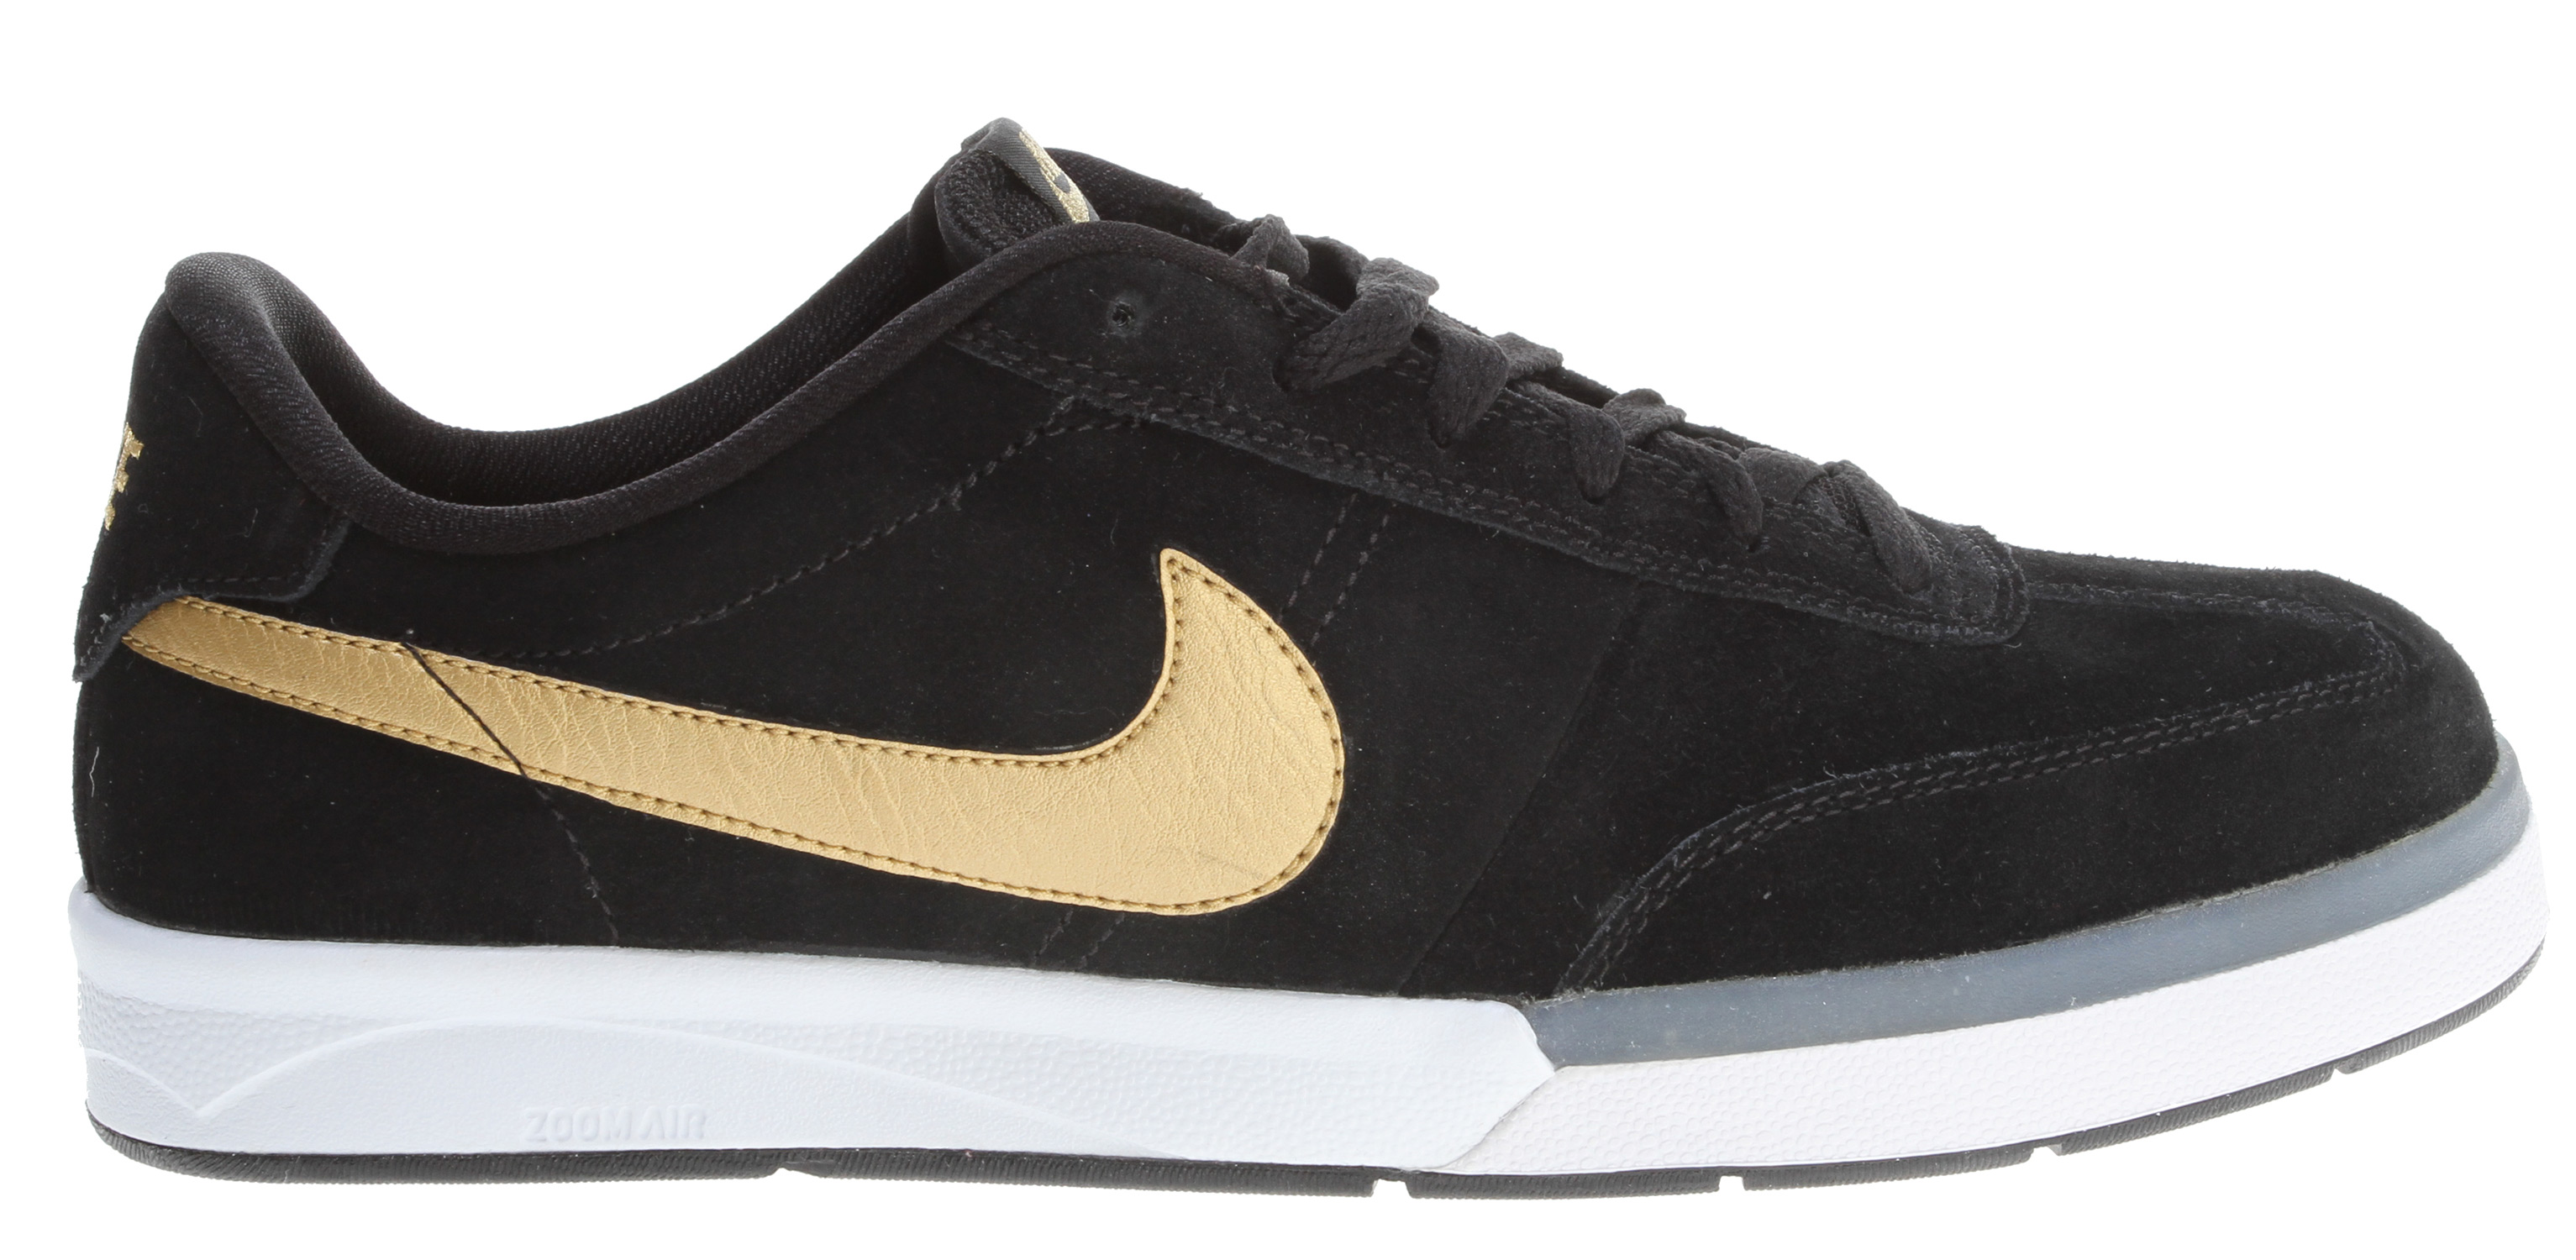 Skateboard Key Features of the Nike Zoom Fc X Fp Shoes: UPPER: Suede/leather/Nubuck upper provides durability and protection OUTSOLE: Rubber outsole for great durability Great design for flexibility and board control MIDSOLE: Nike Zoom unit Soccer inspired skateboard style. - $55.95